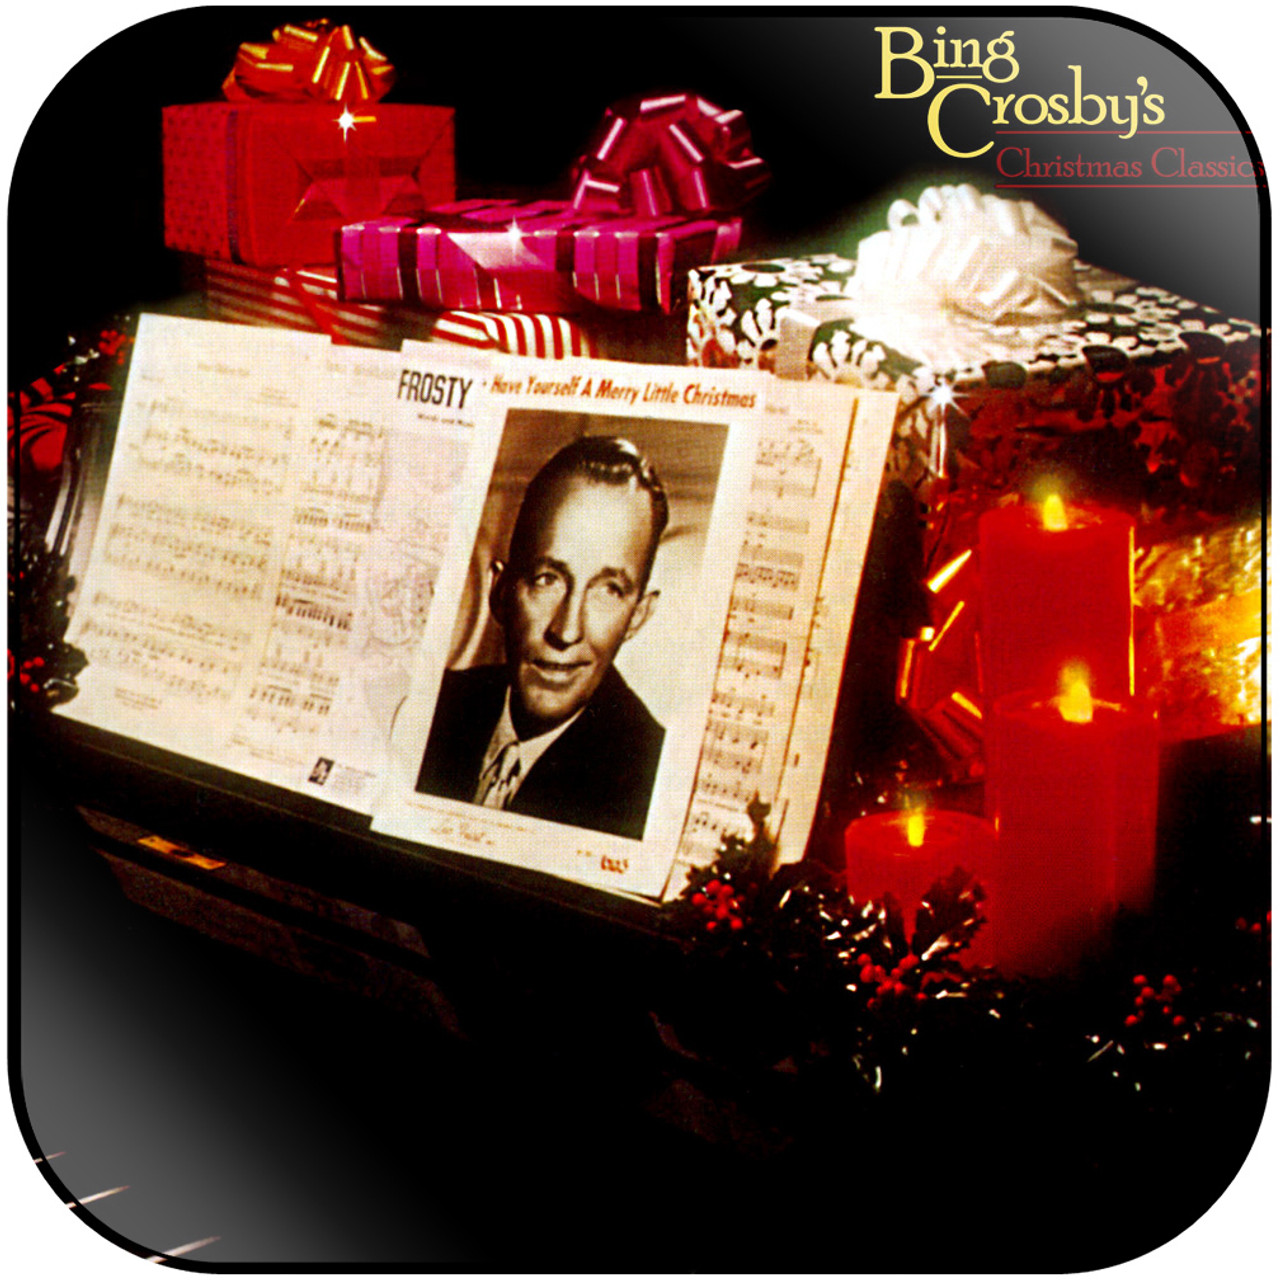 Bing Crosby Christmas Album.Bing Crosby Christmas Classics Album Cover Sticker Album Cover Sticker